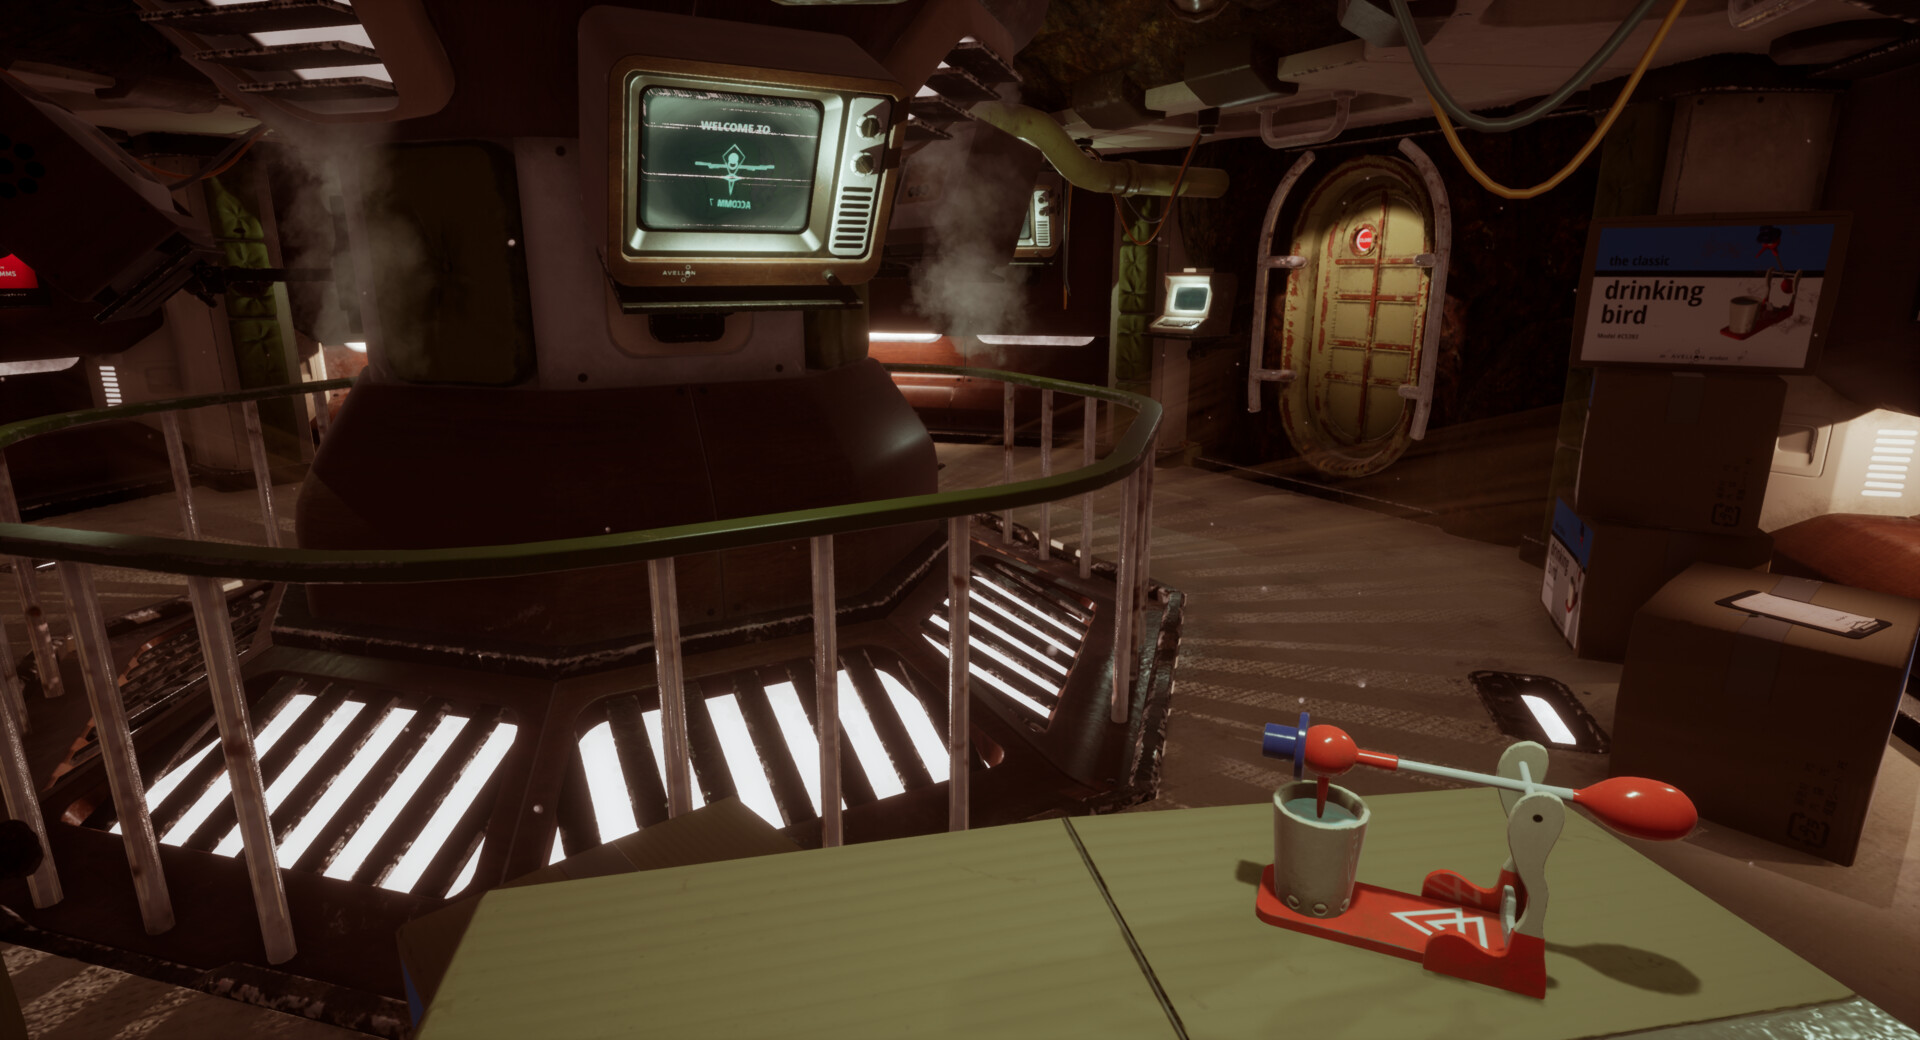 Primarily functioning as an in-game tutorial and primer to the soon-to-be home of the player. Multiple objects are interactable and the player can not leave the room before figuring out the interaction system.